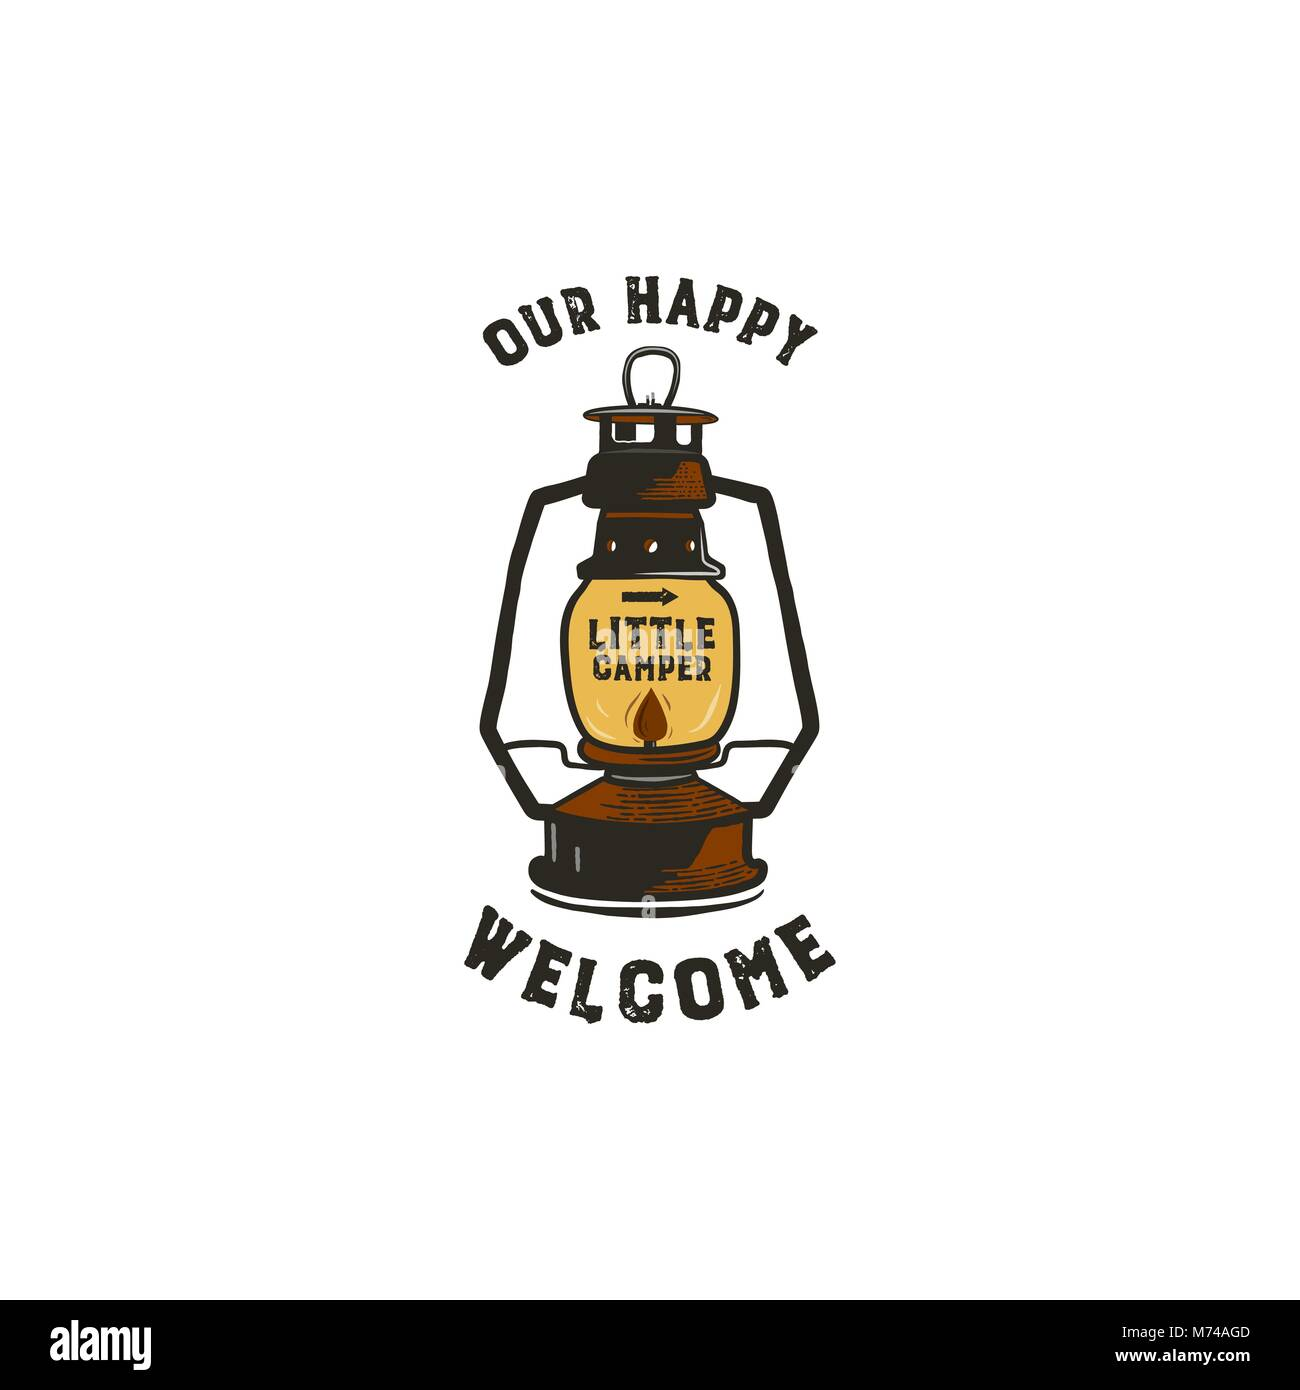 Vintage hand-drawn lantern logo concept. Perfect for logo design, badge, camping labels. Retro colors. Symbol for - Stock Vector